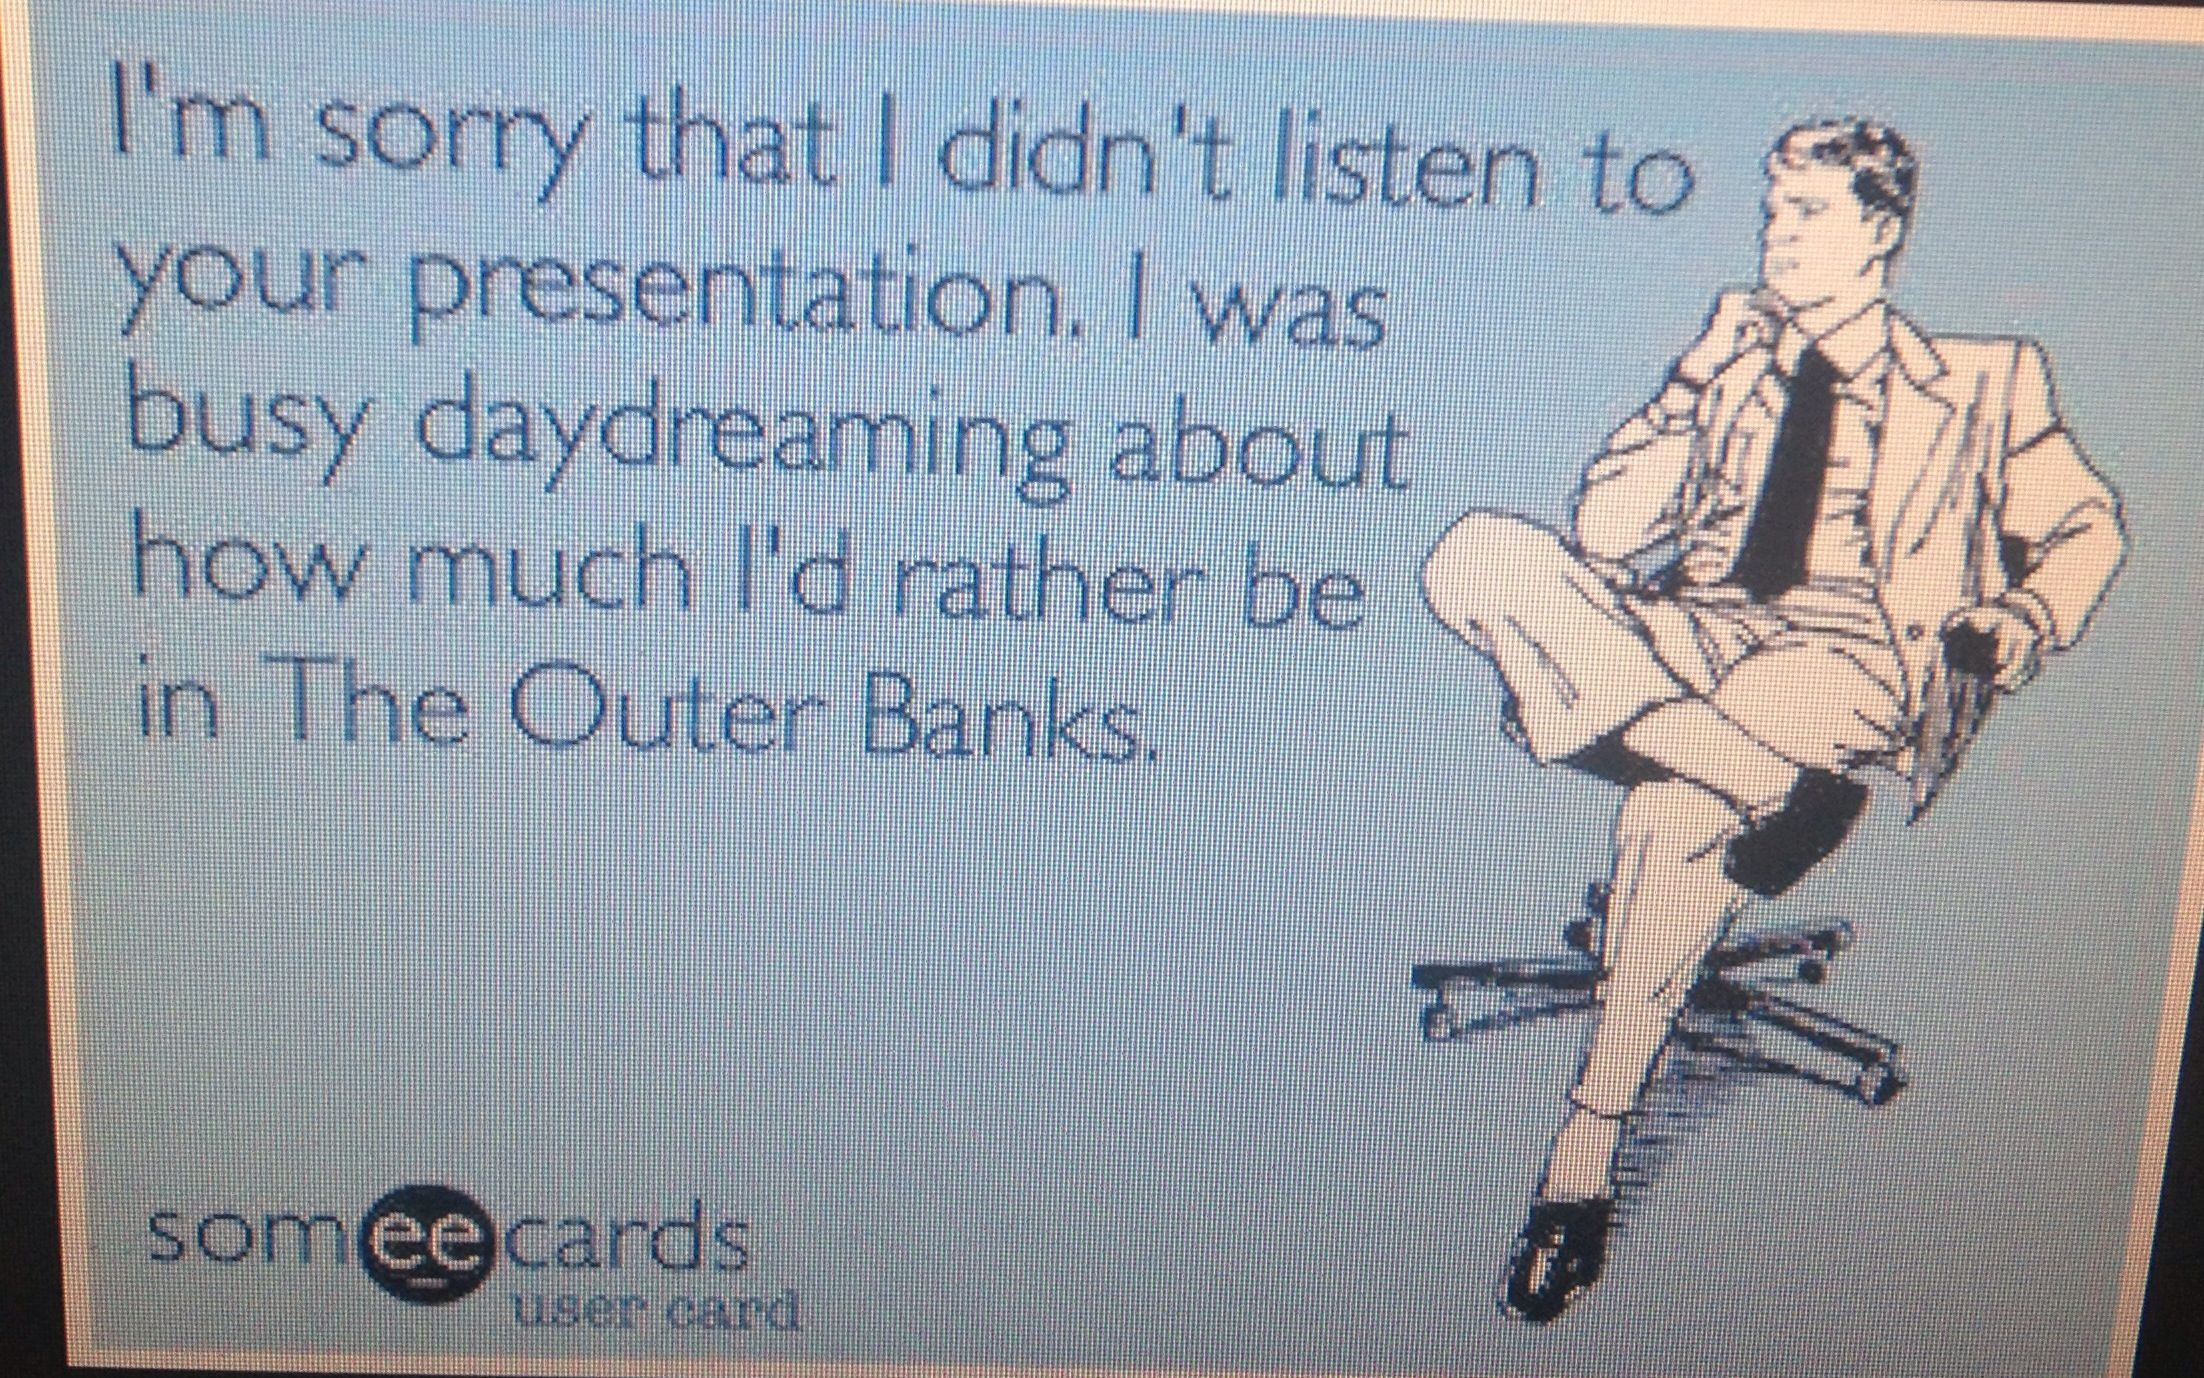 OBX vacation quotes - made me laugh since I have to give a presentation tomorrow.